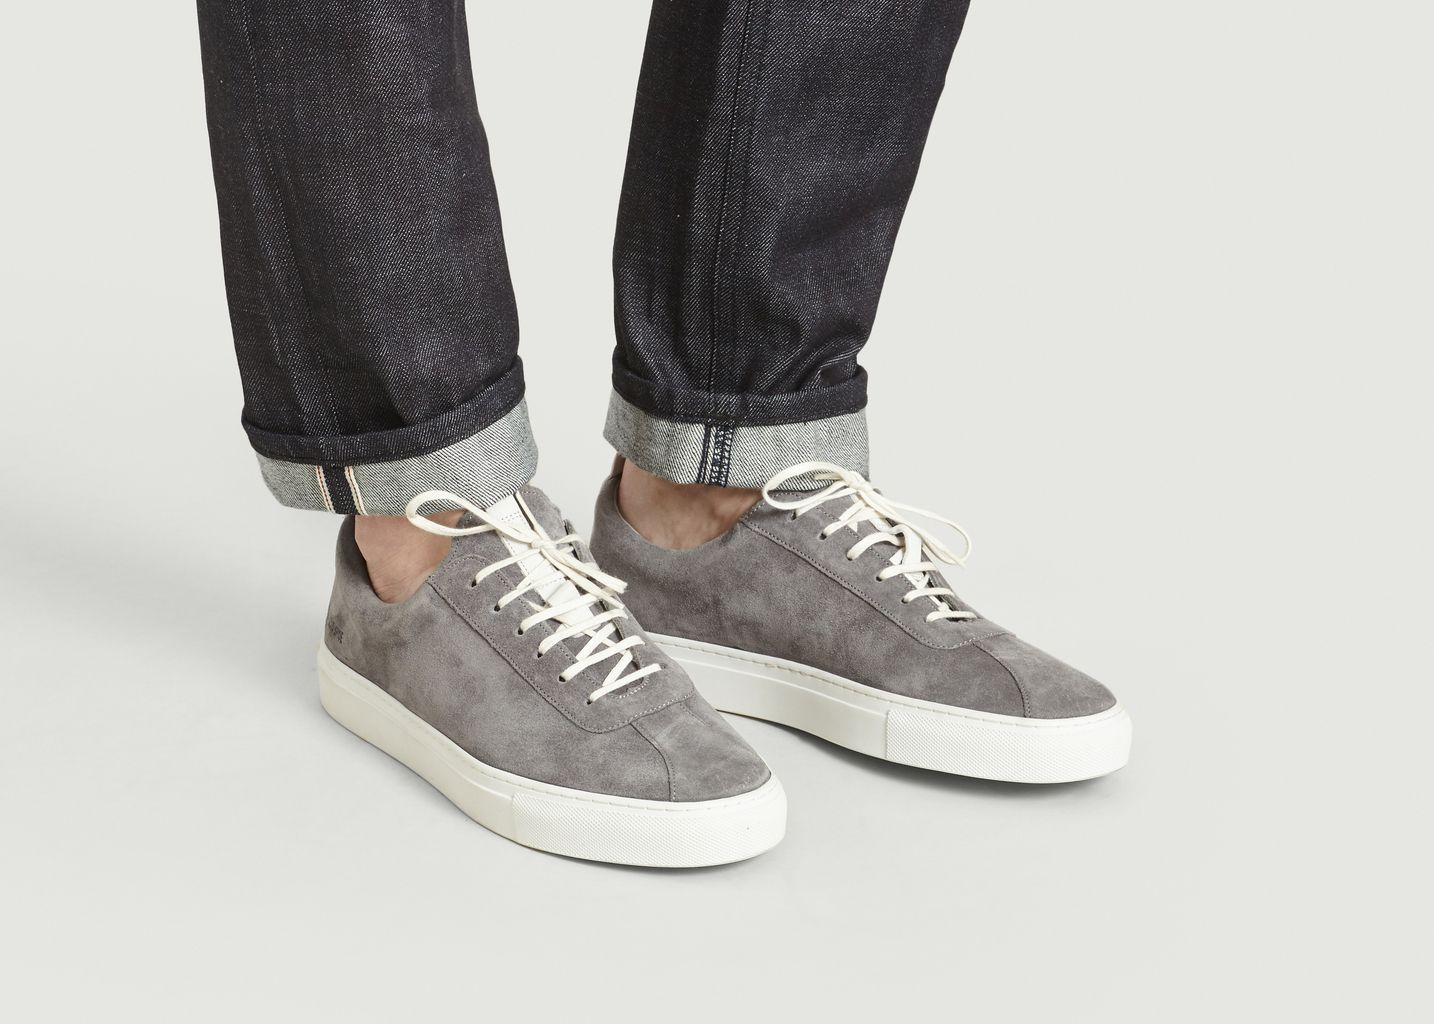 Sneakers 1 Grey Grenson | L'Exception